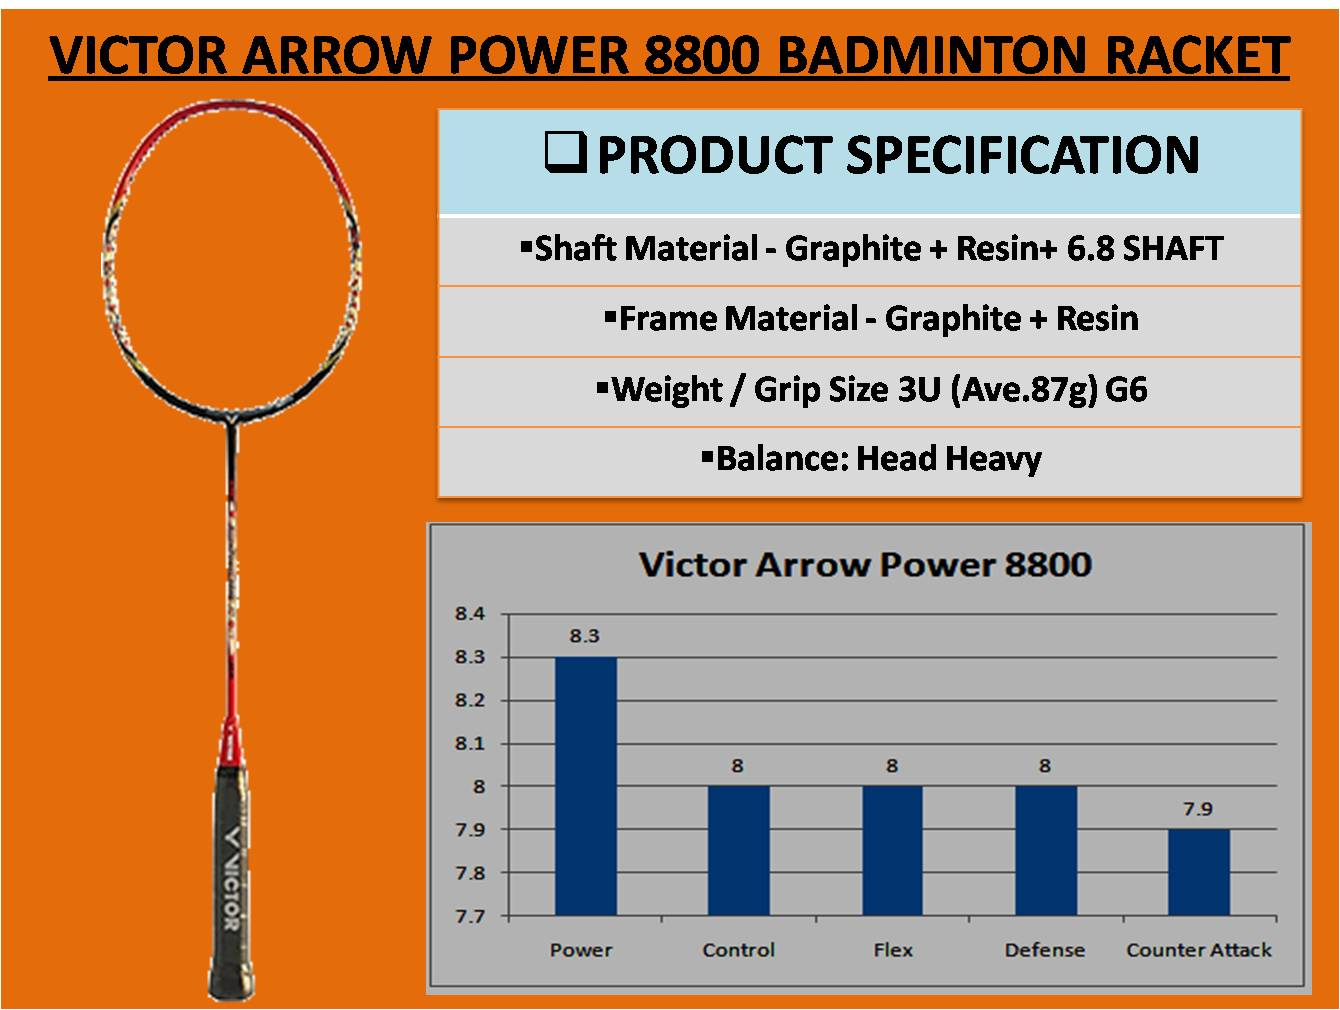 VICTOR ARROW POWER 8800 BADMINTON RACKET_7